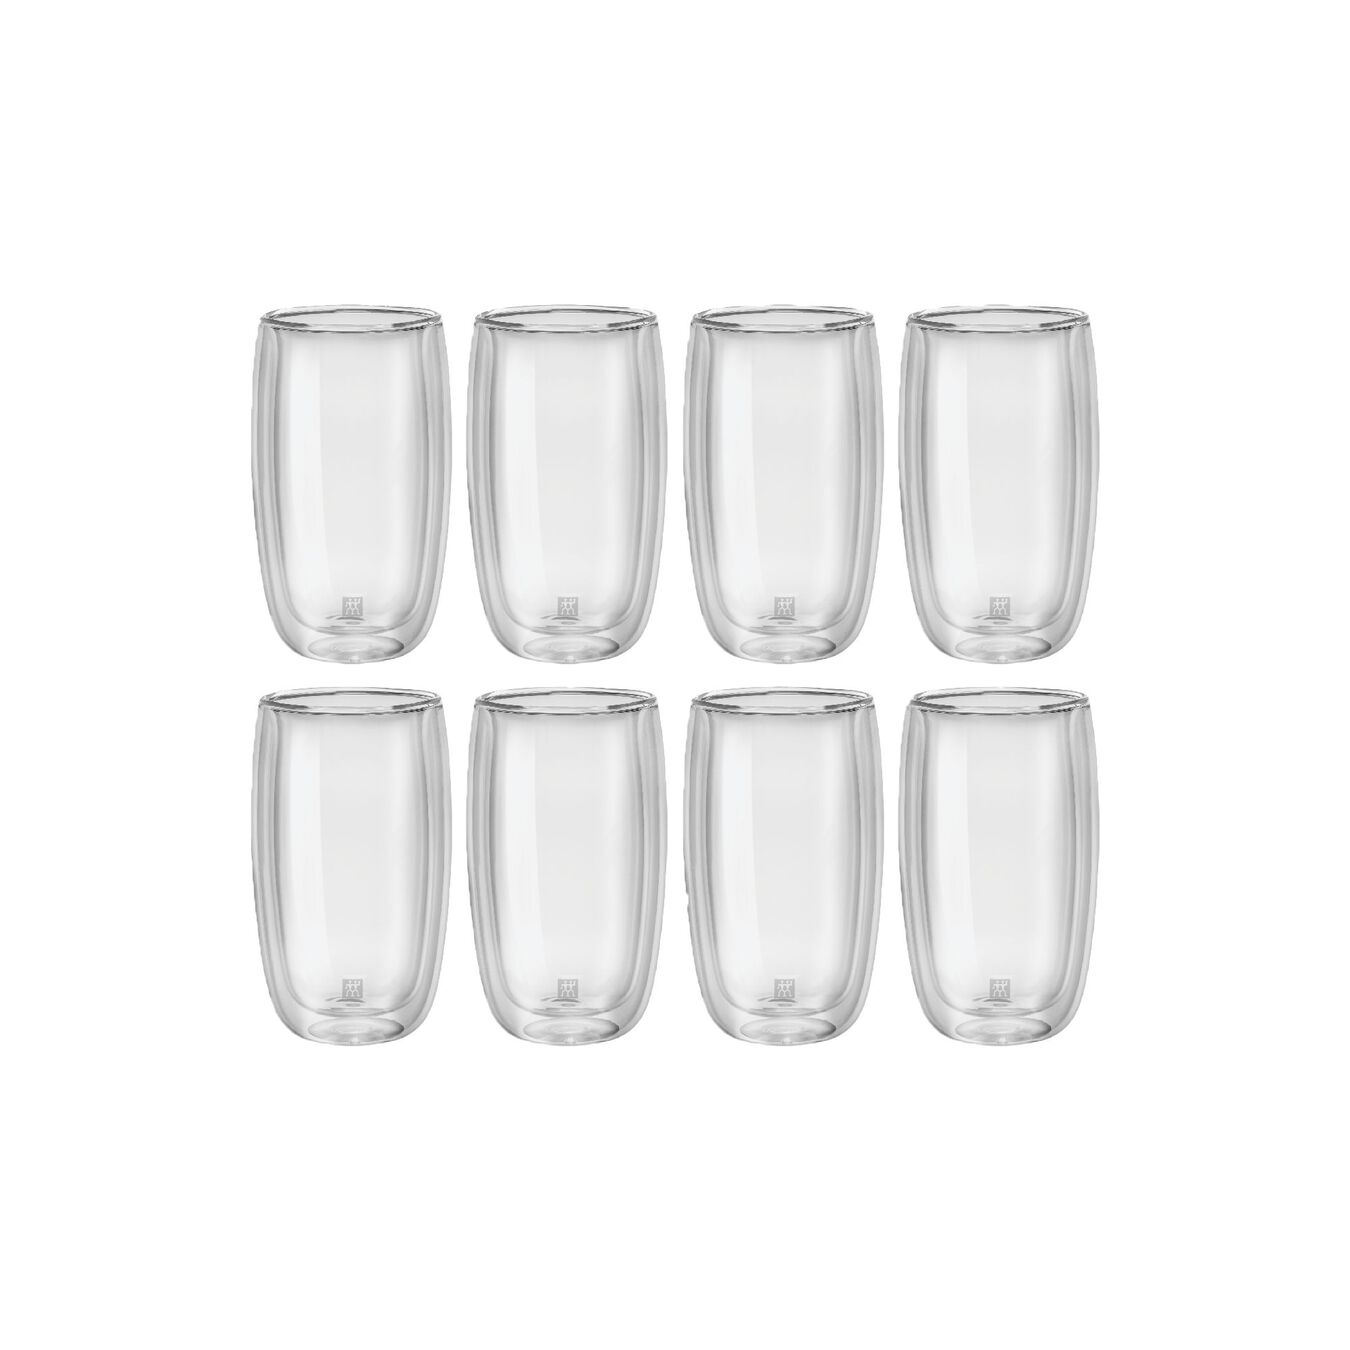 8 Piece Latte glass set - Buy 6 Get 8,,large 2